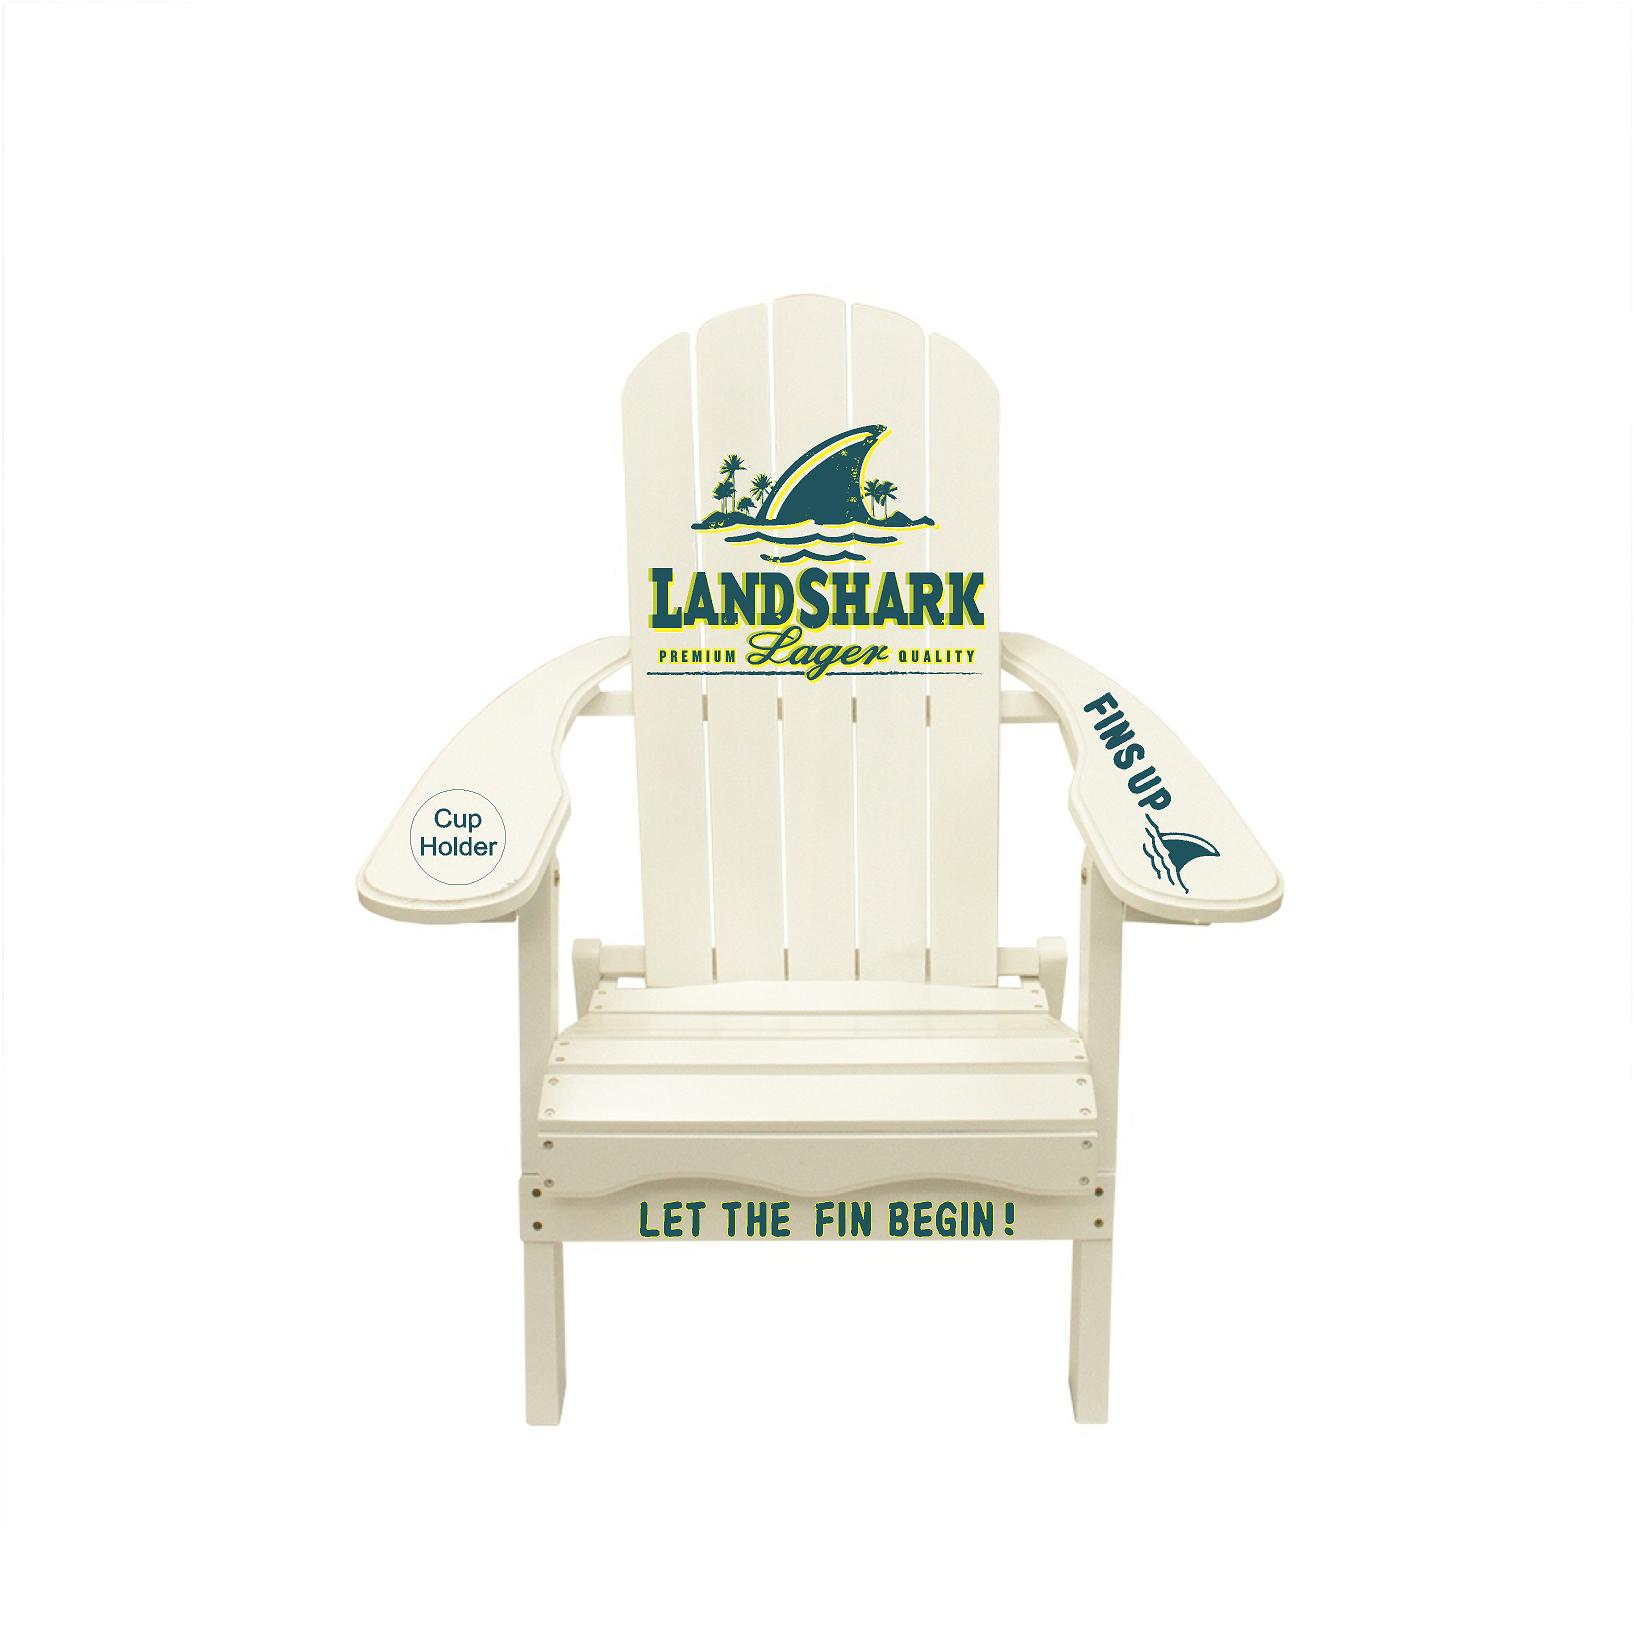 Landshark, (This is a customer request) Fins Up, Let the Fin Begin saying Outdoor Wooden Adirondack Lounge Chair